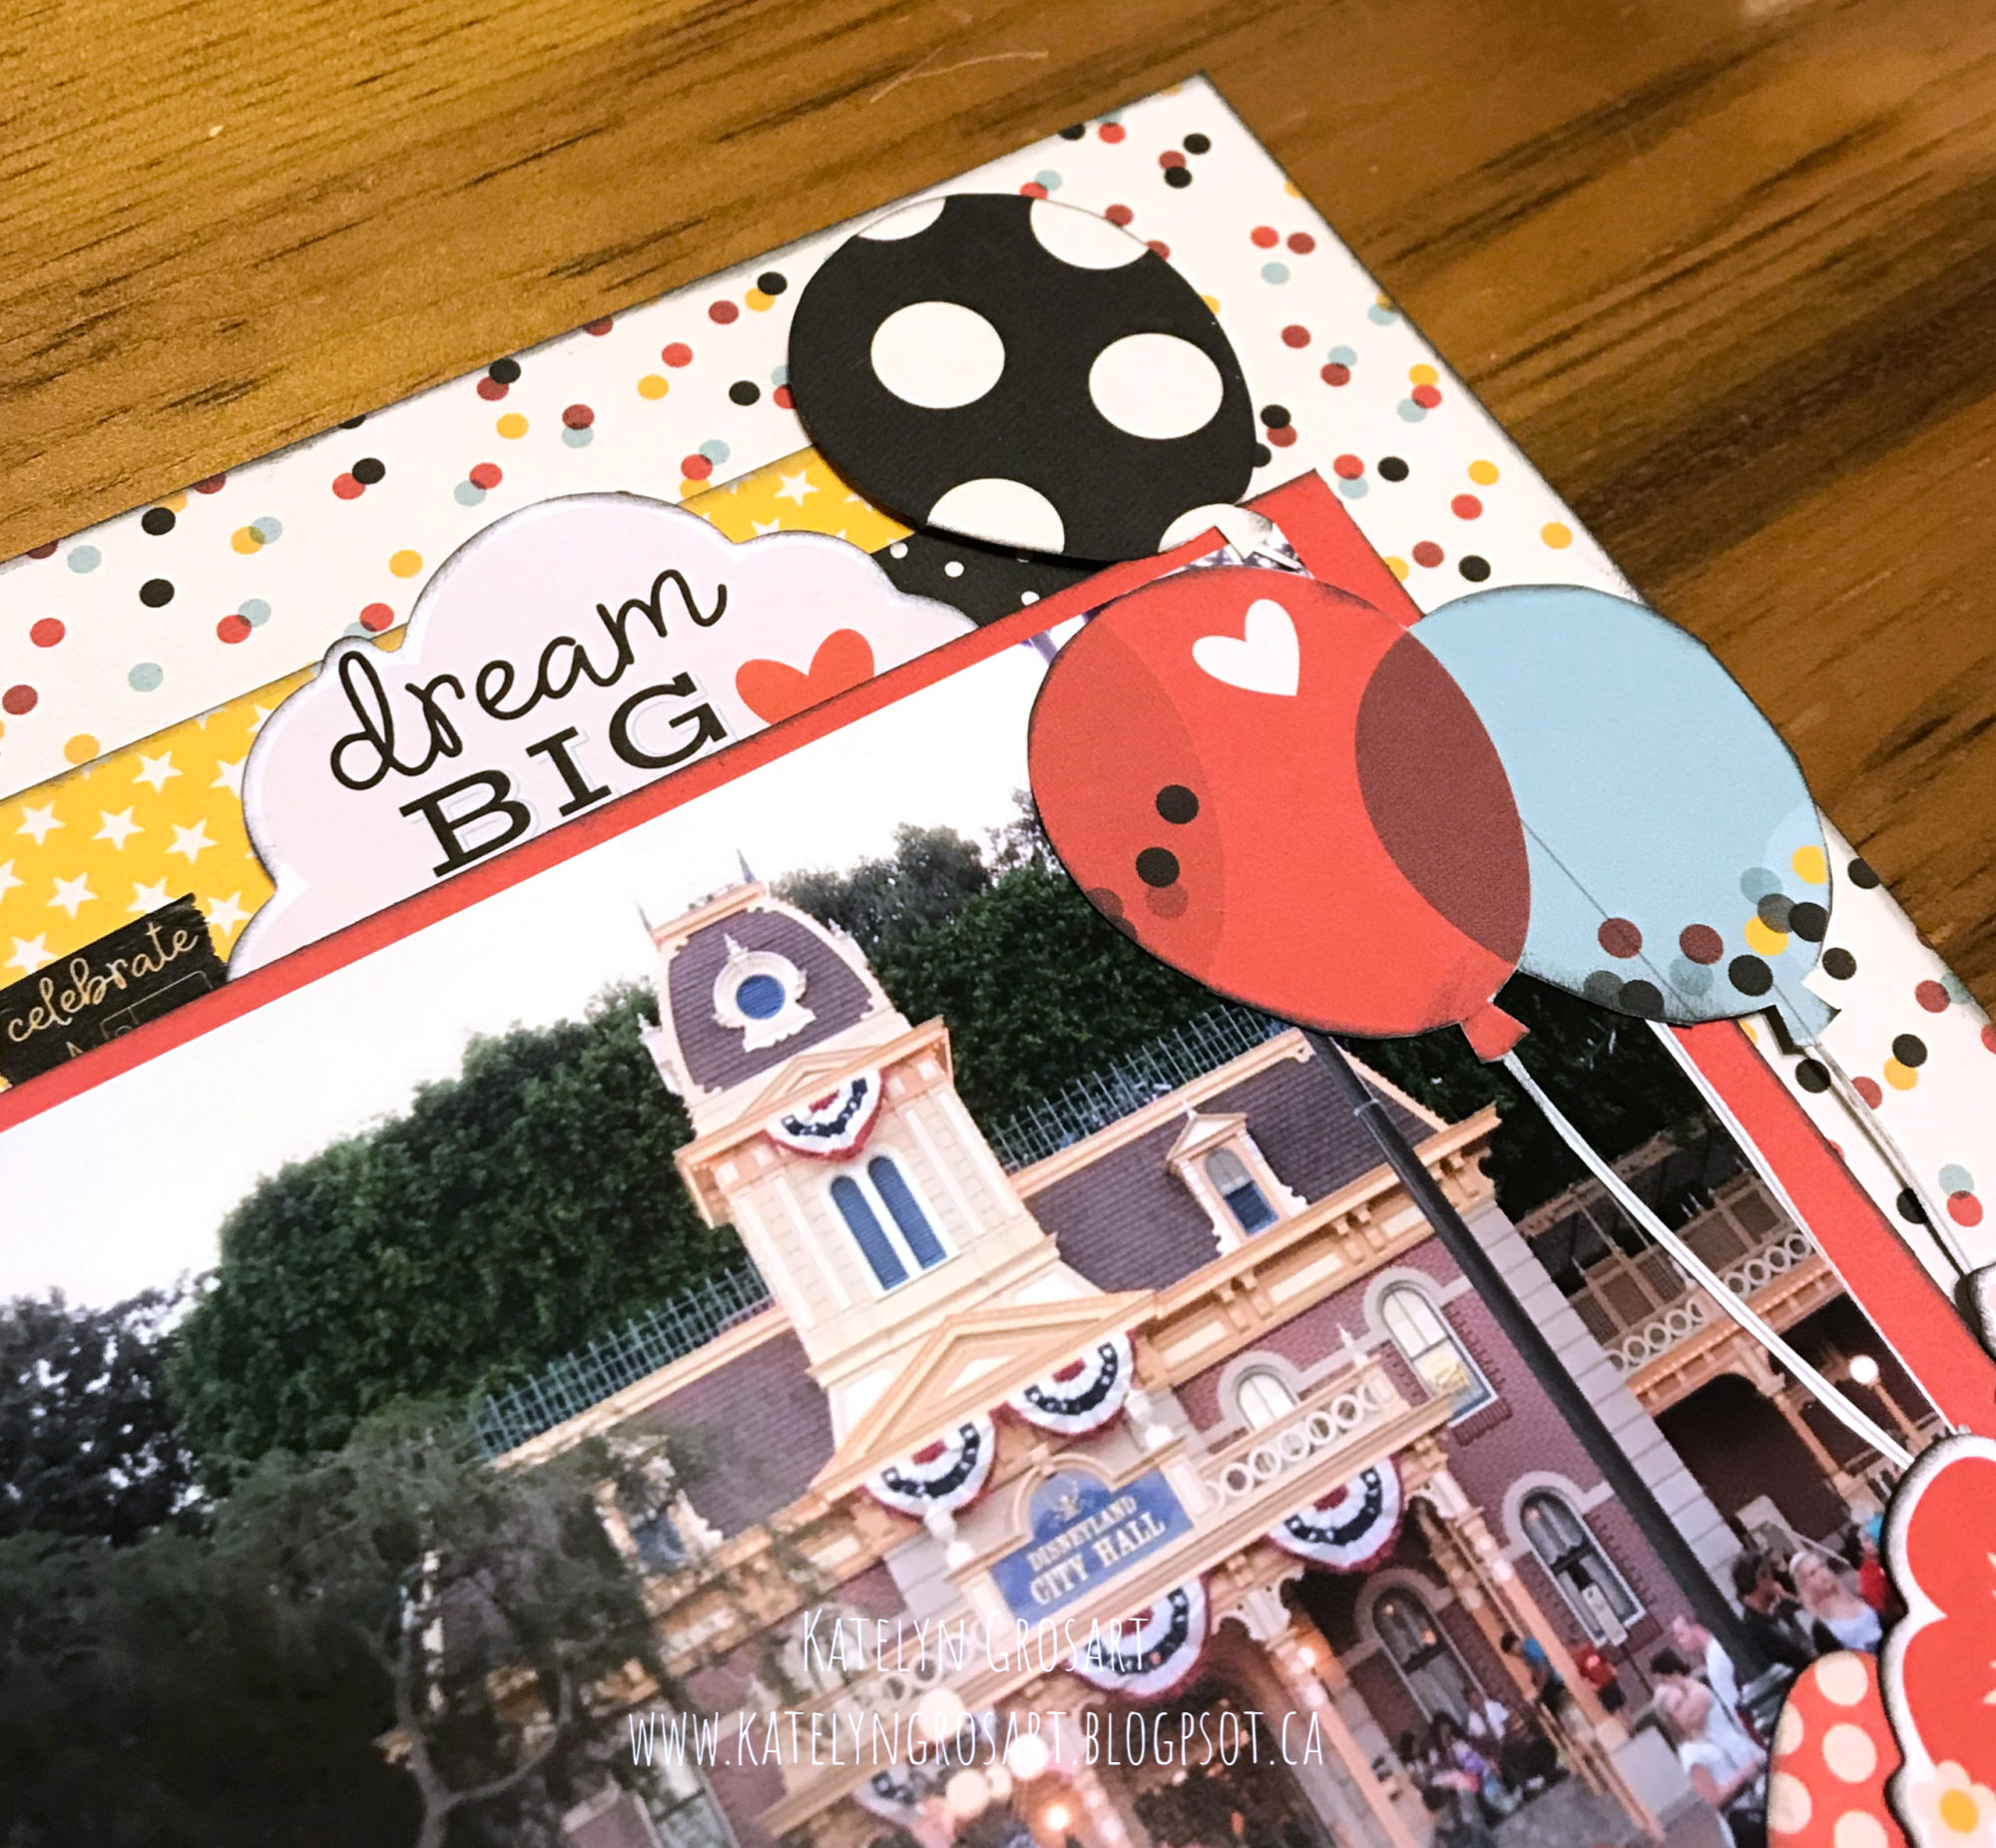 Details of Disney Themed Scrapbook Layout featuring Simple Stories designed by Katelyn Grosart